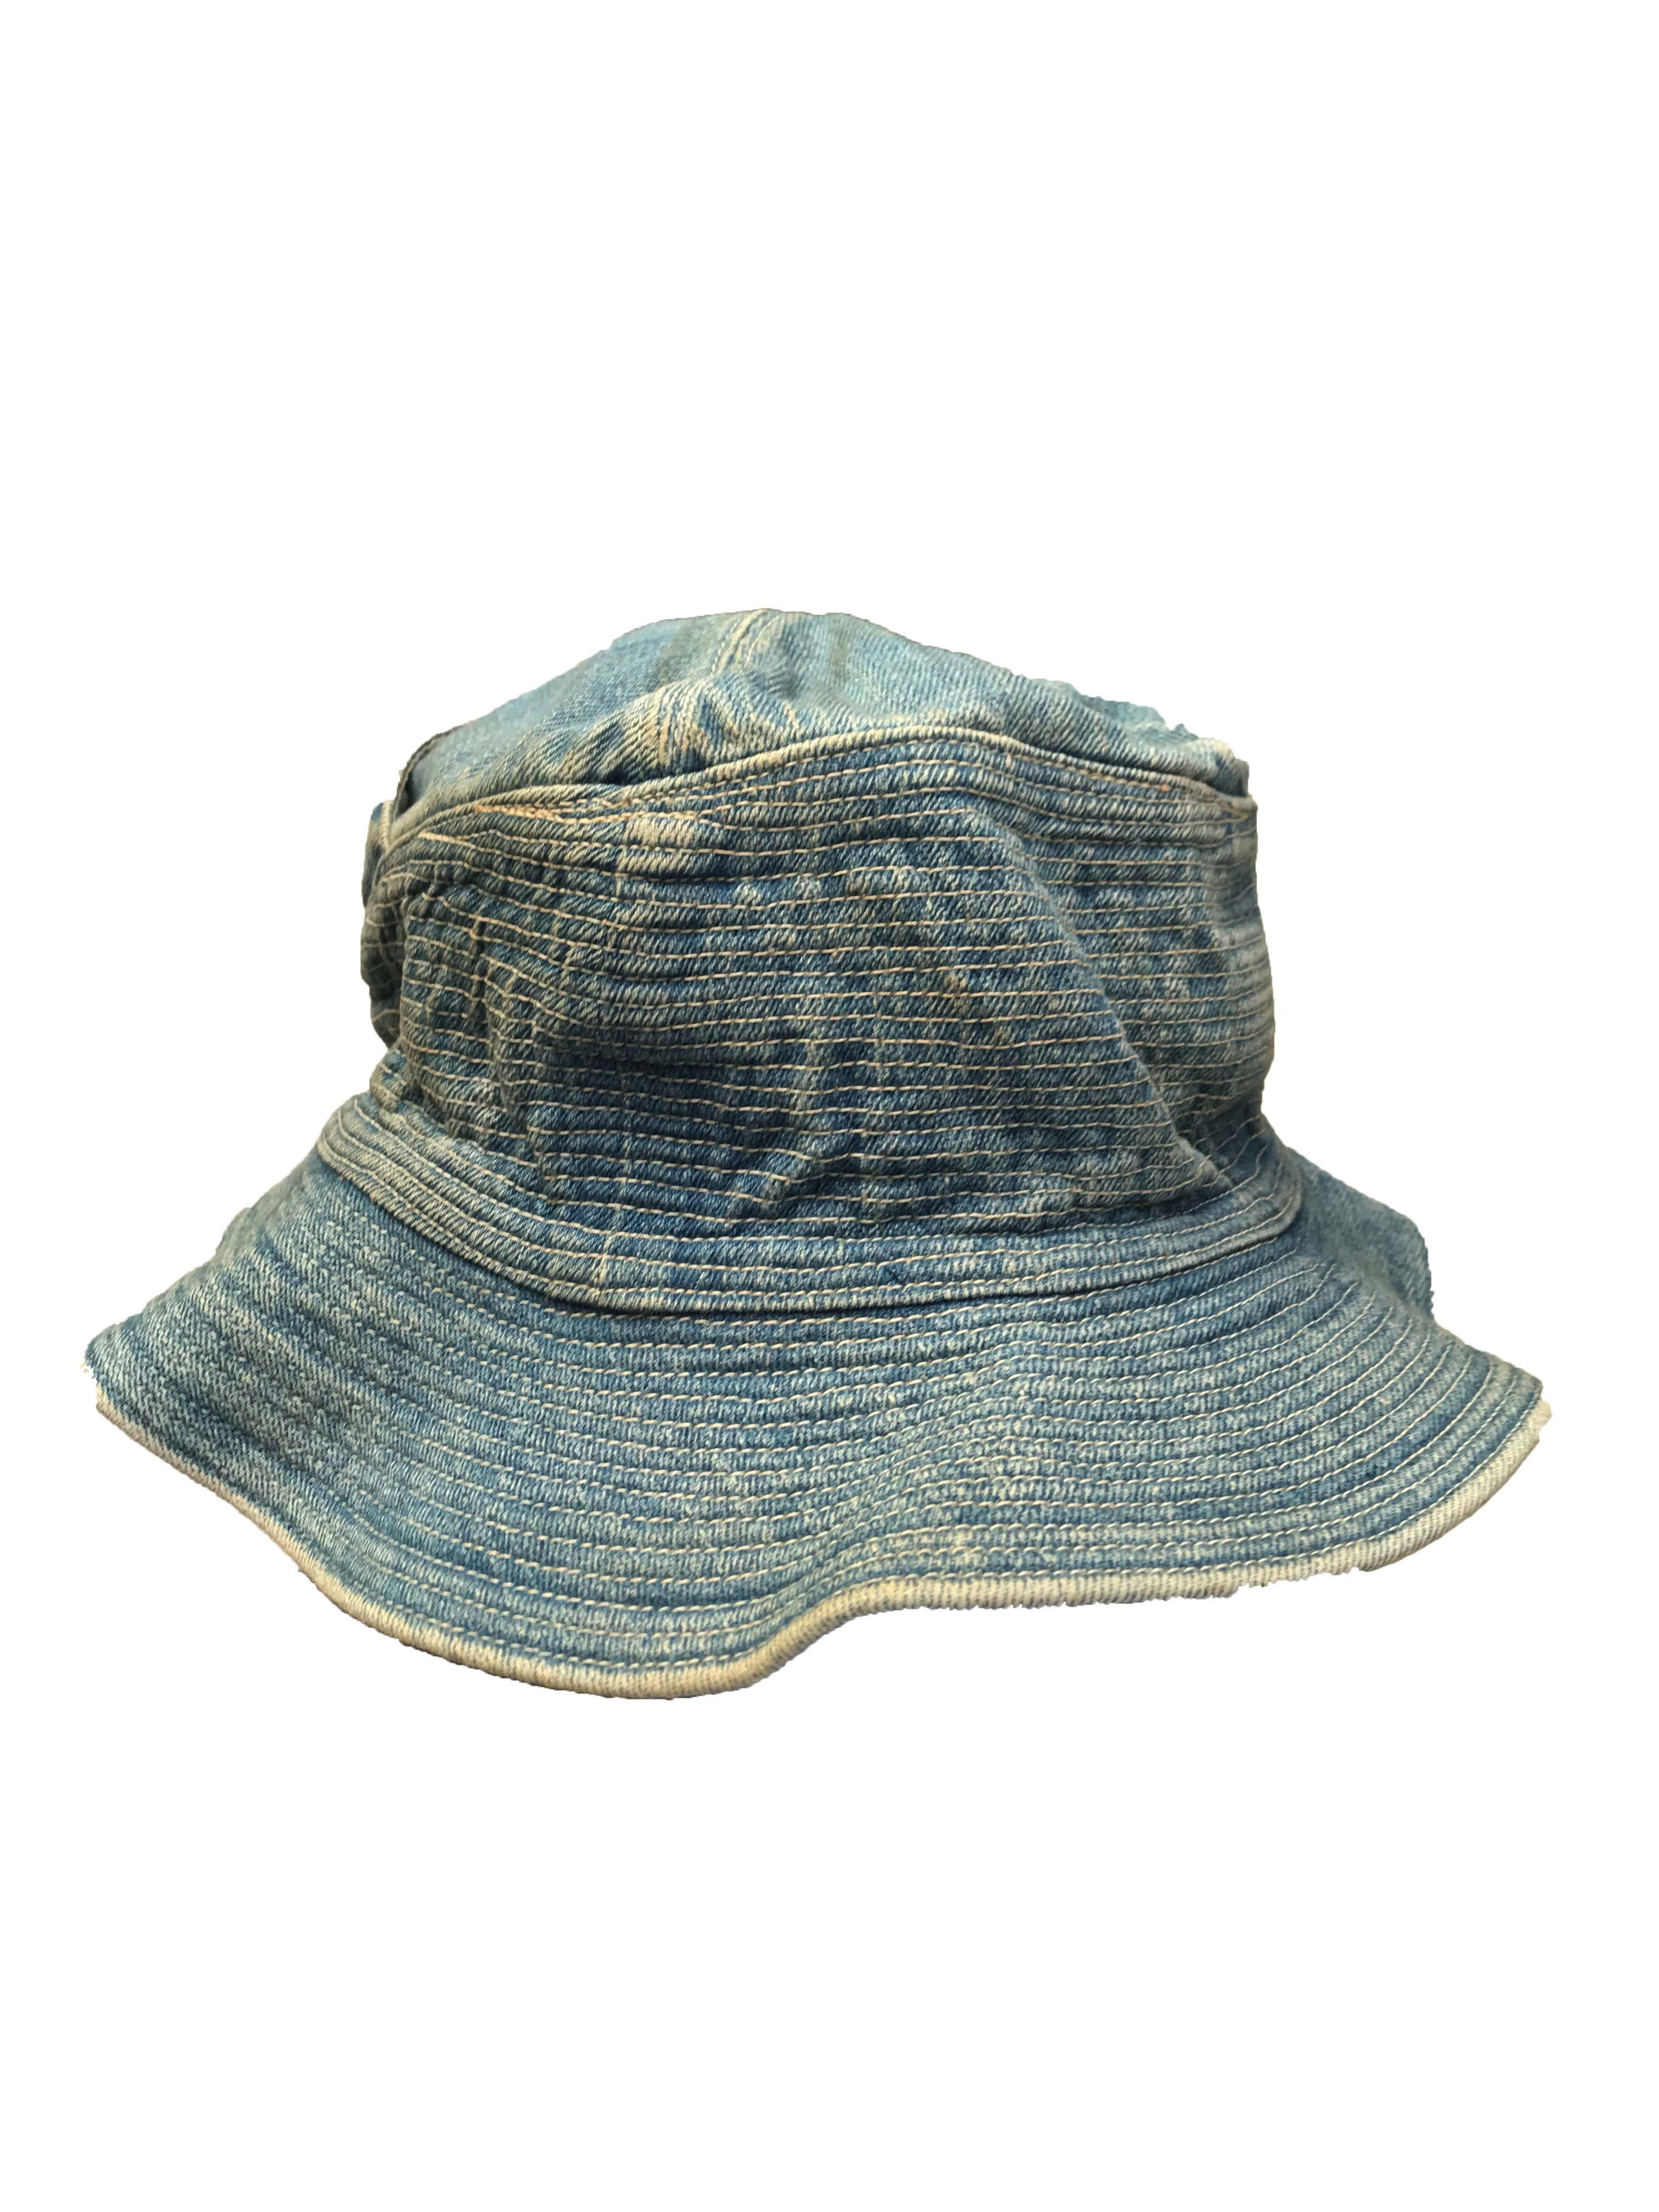 Kapital Denim Old Man and the Sea Bucket Hat Size one size - Hats ... 7029efac7c17